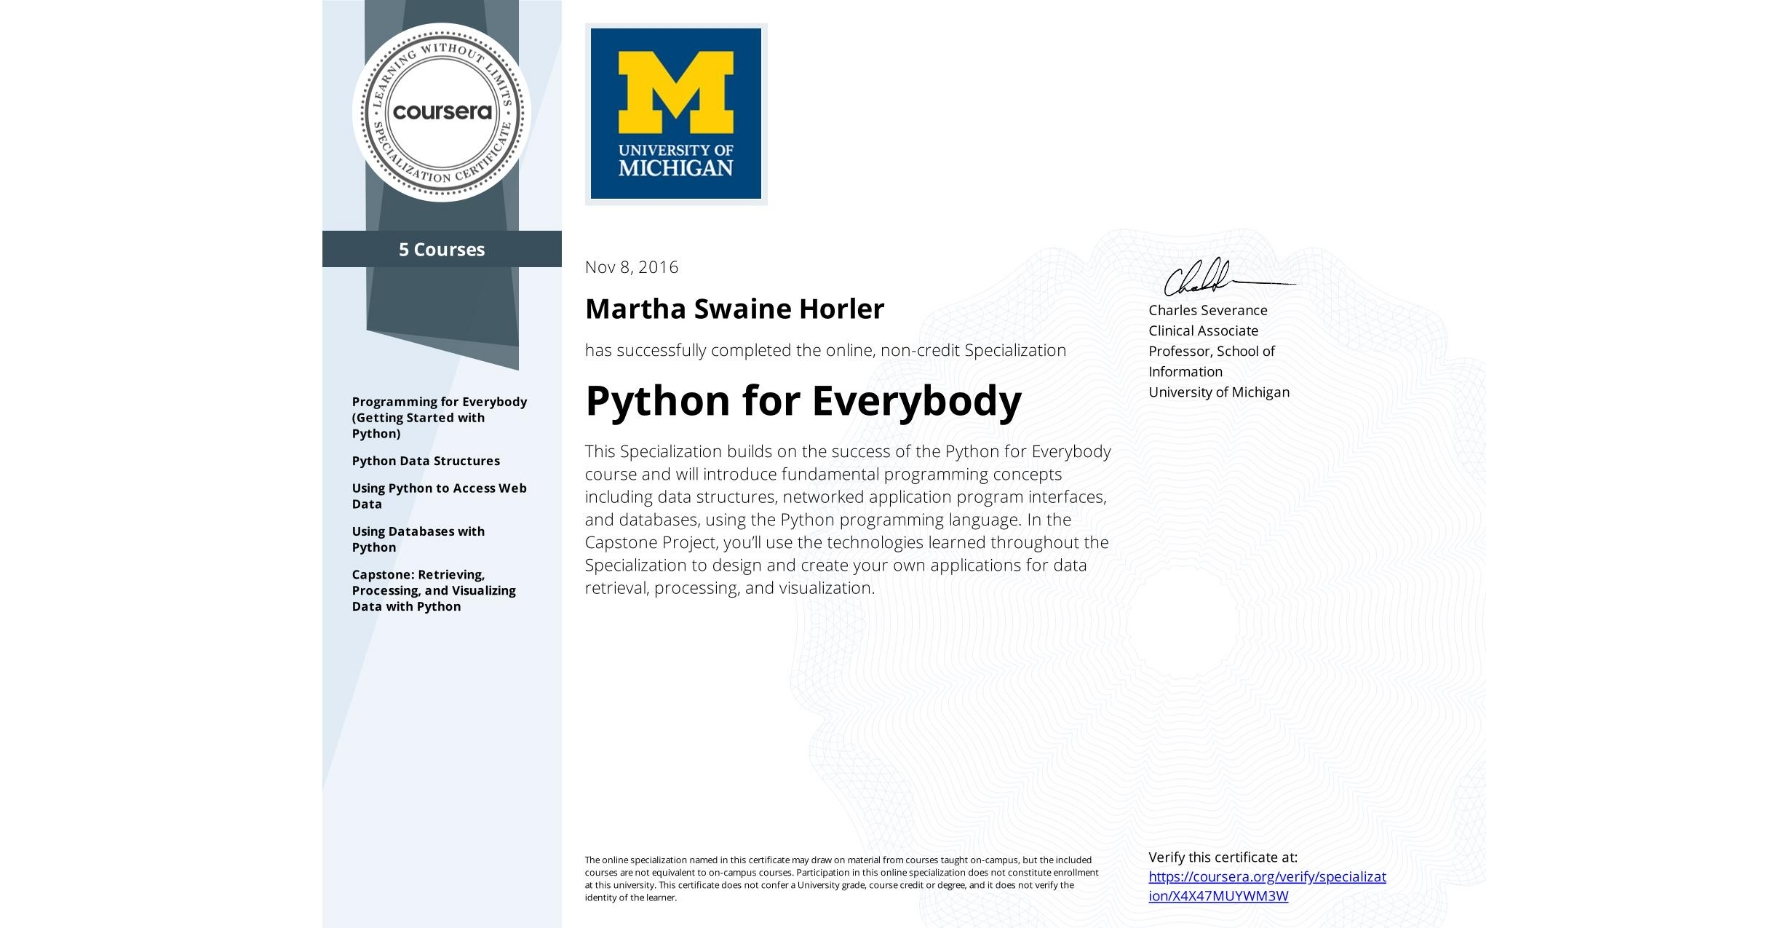 View certificate for Martha Swaine Horler, Python for Everybody, offered through Coursera. This Specialization builds on the success of the Python for Everybody course and will introduce fundamental programming concepts including data structures, networked application program interfaces, and databases, using the Python programming language. In the Capstone Project, you'll use the technologies learned throughout the Specialization to design and create your own applications for data retrieval, processing, and visualization.